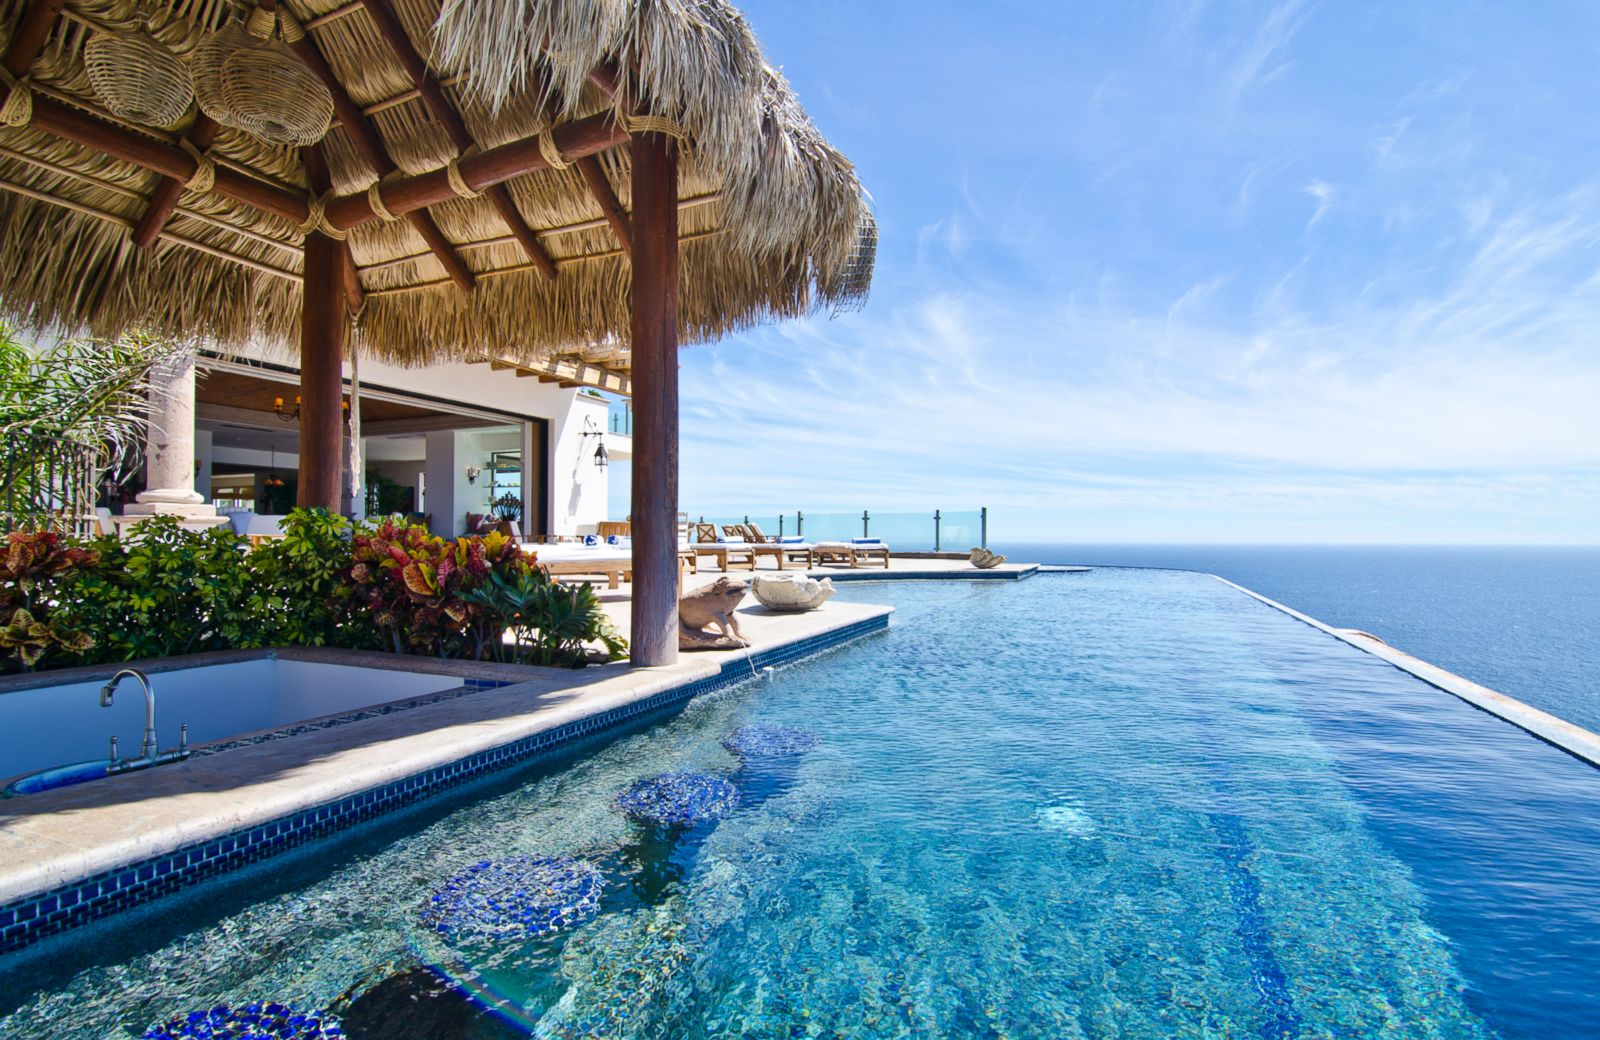 10 vacation rentals with infinity pools photos image 5 for Villas with infinity pools